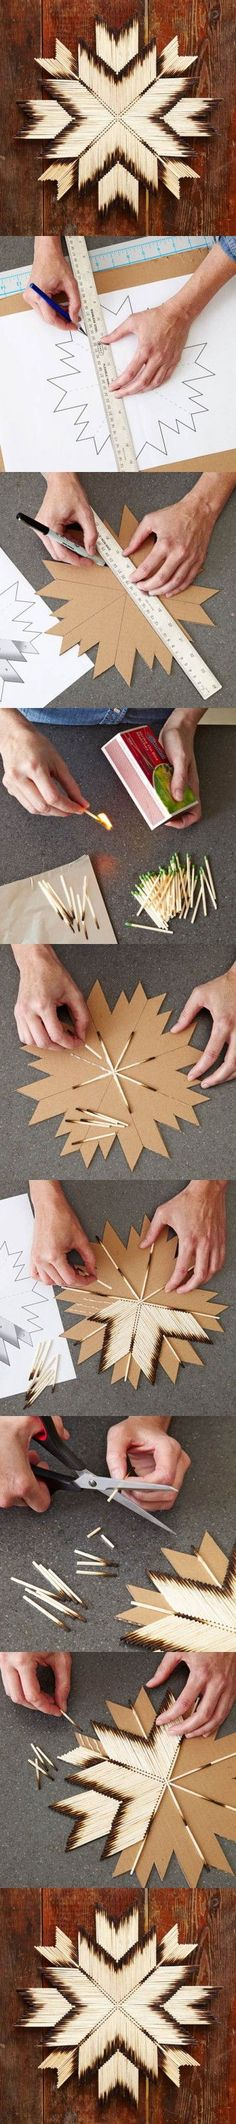 DIY Unique Matchstick Craft